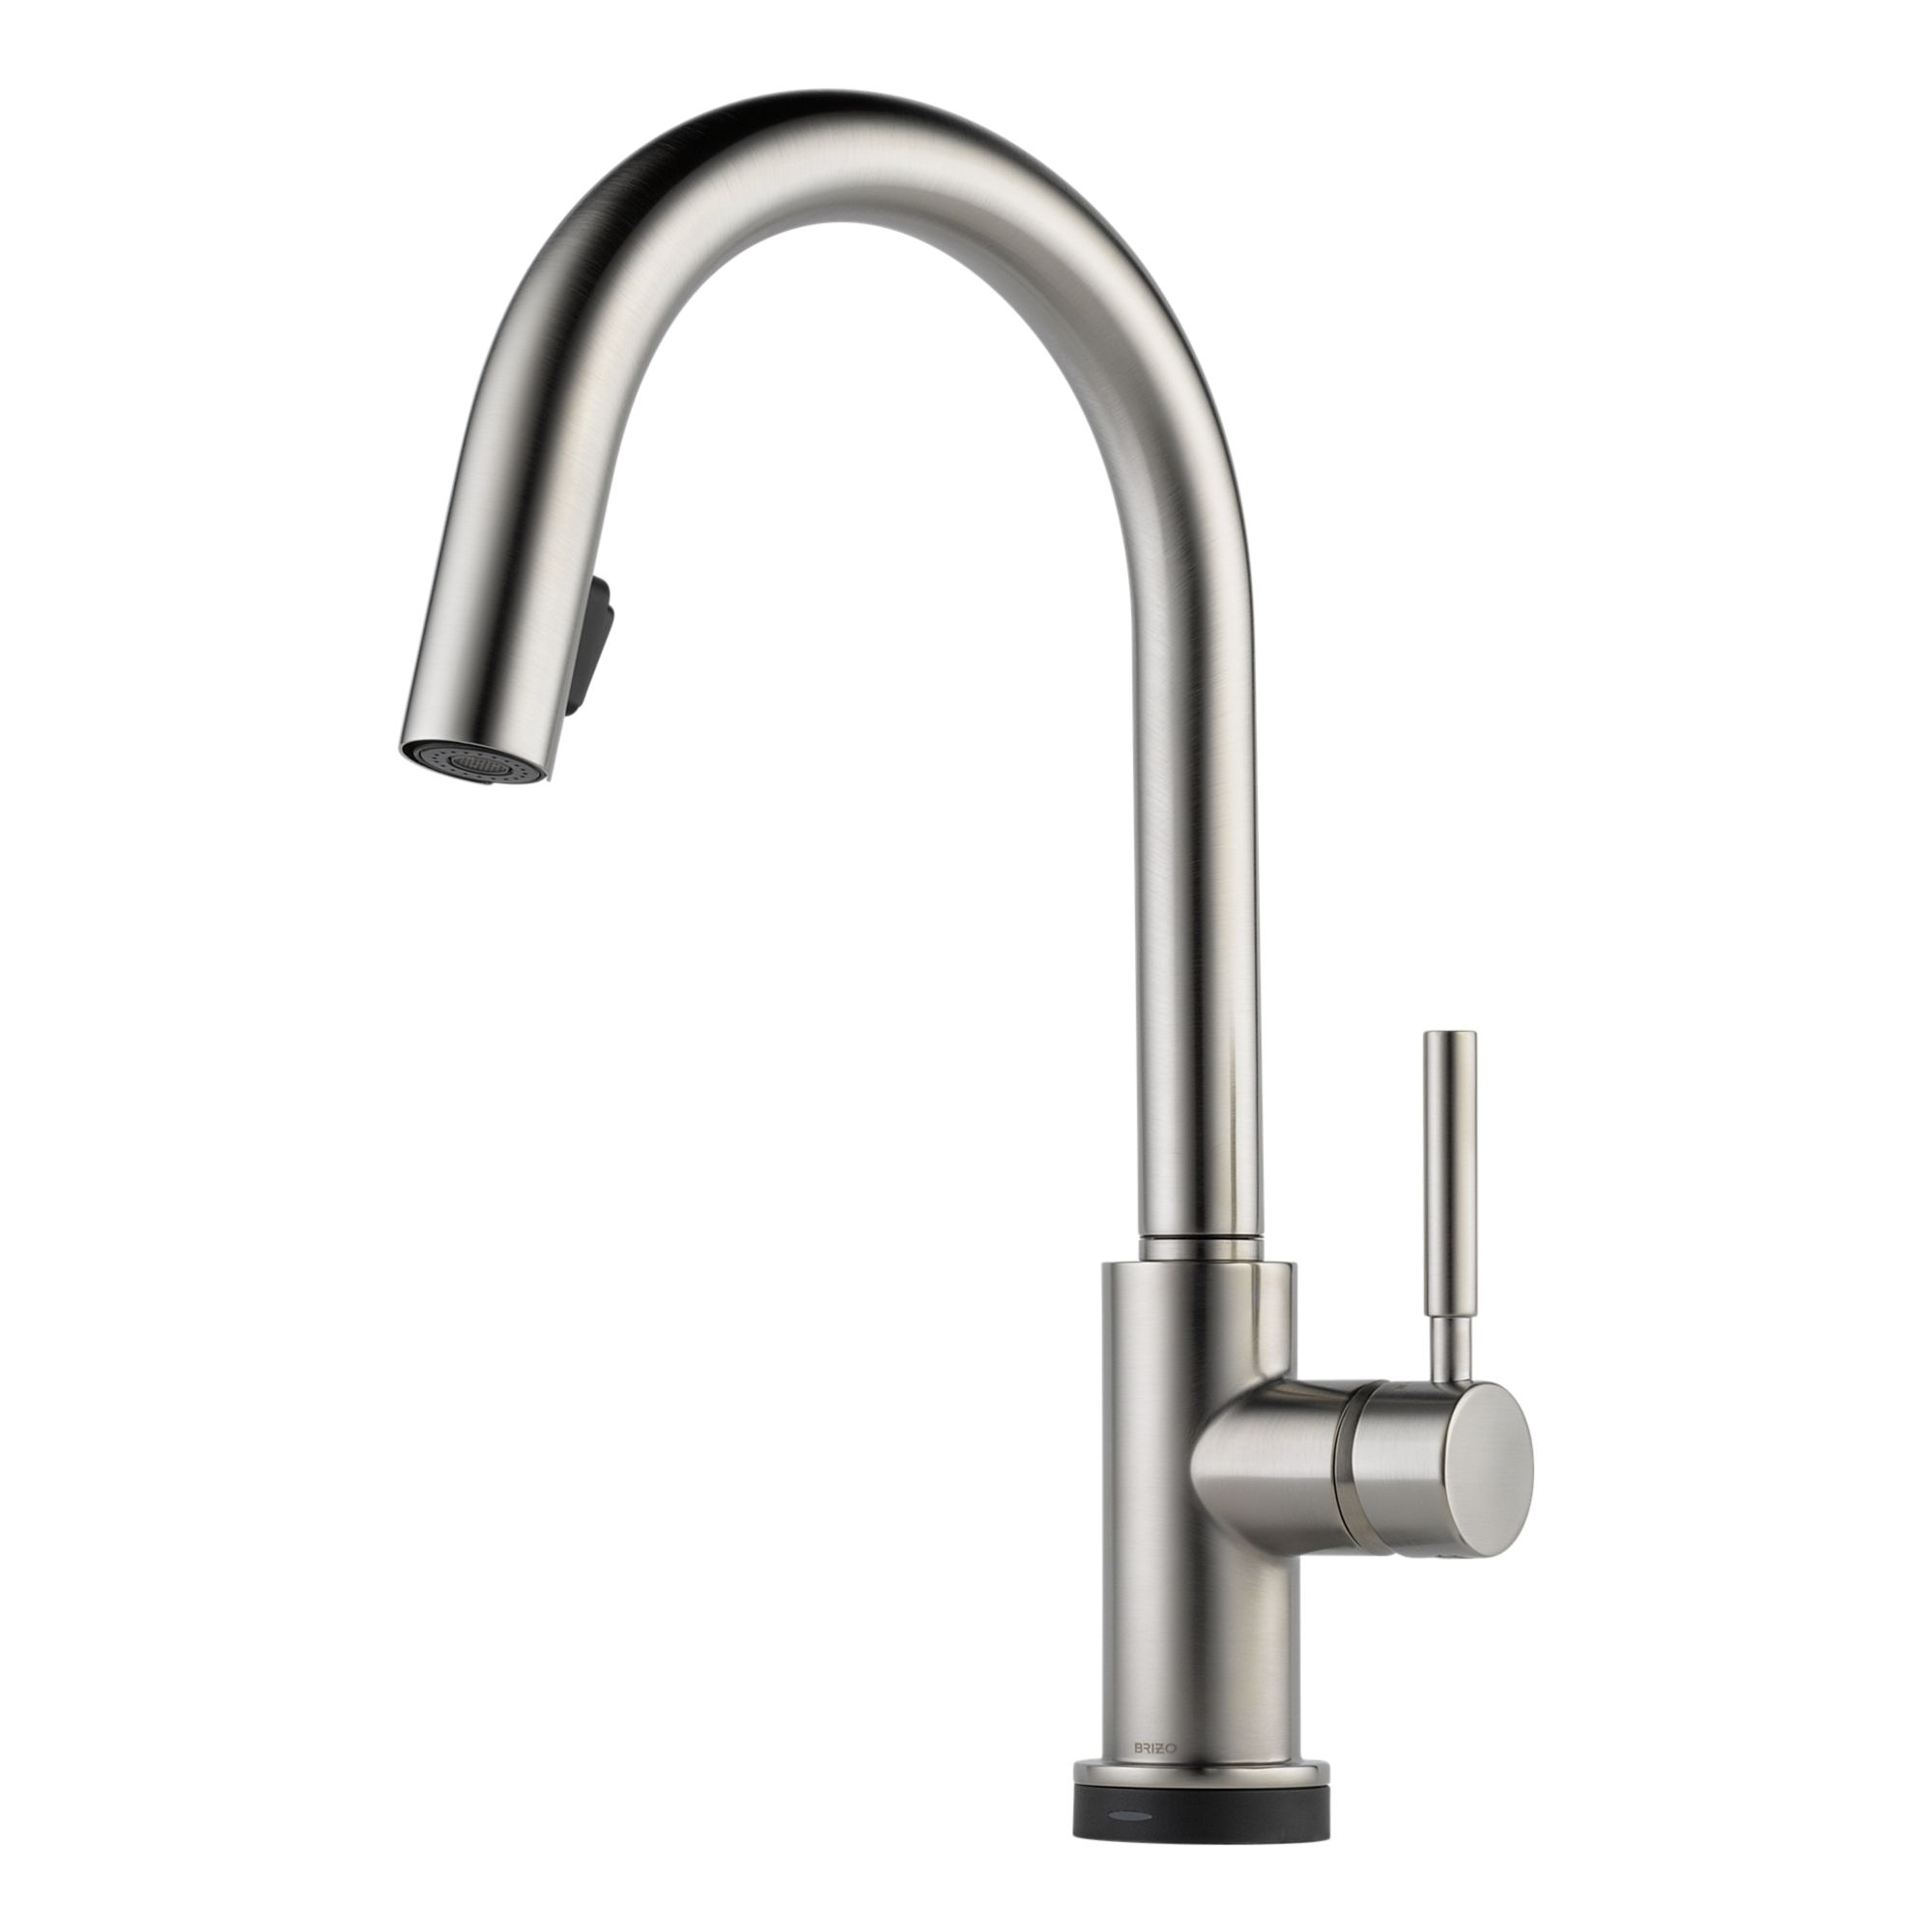 Decor: Touch Bathroom Faucet | Brizo Kitchen Faucets | Black Kitchen ...